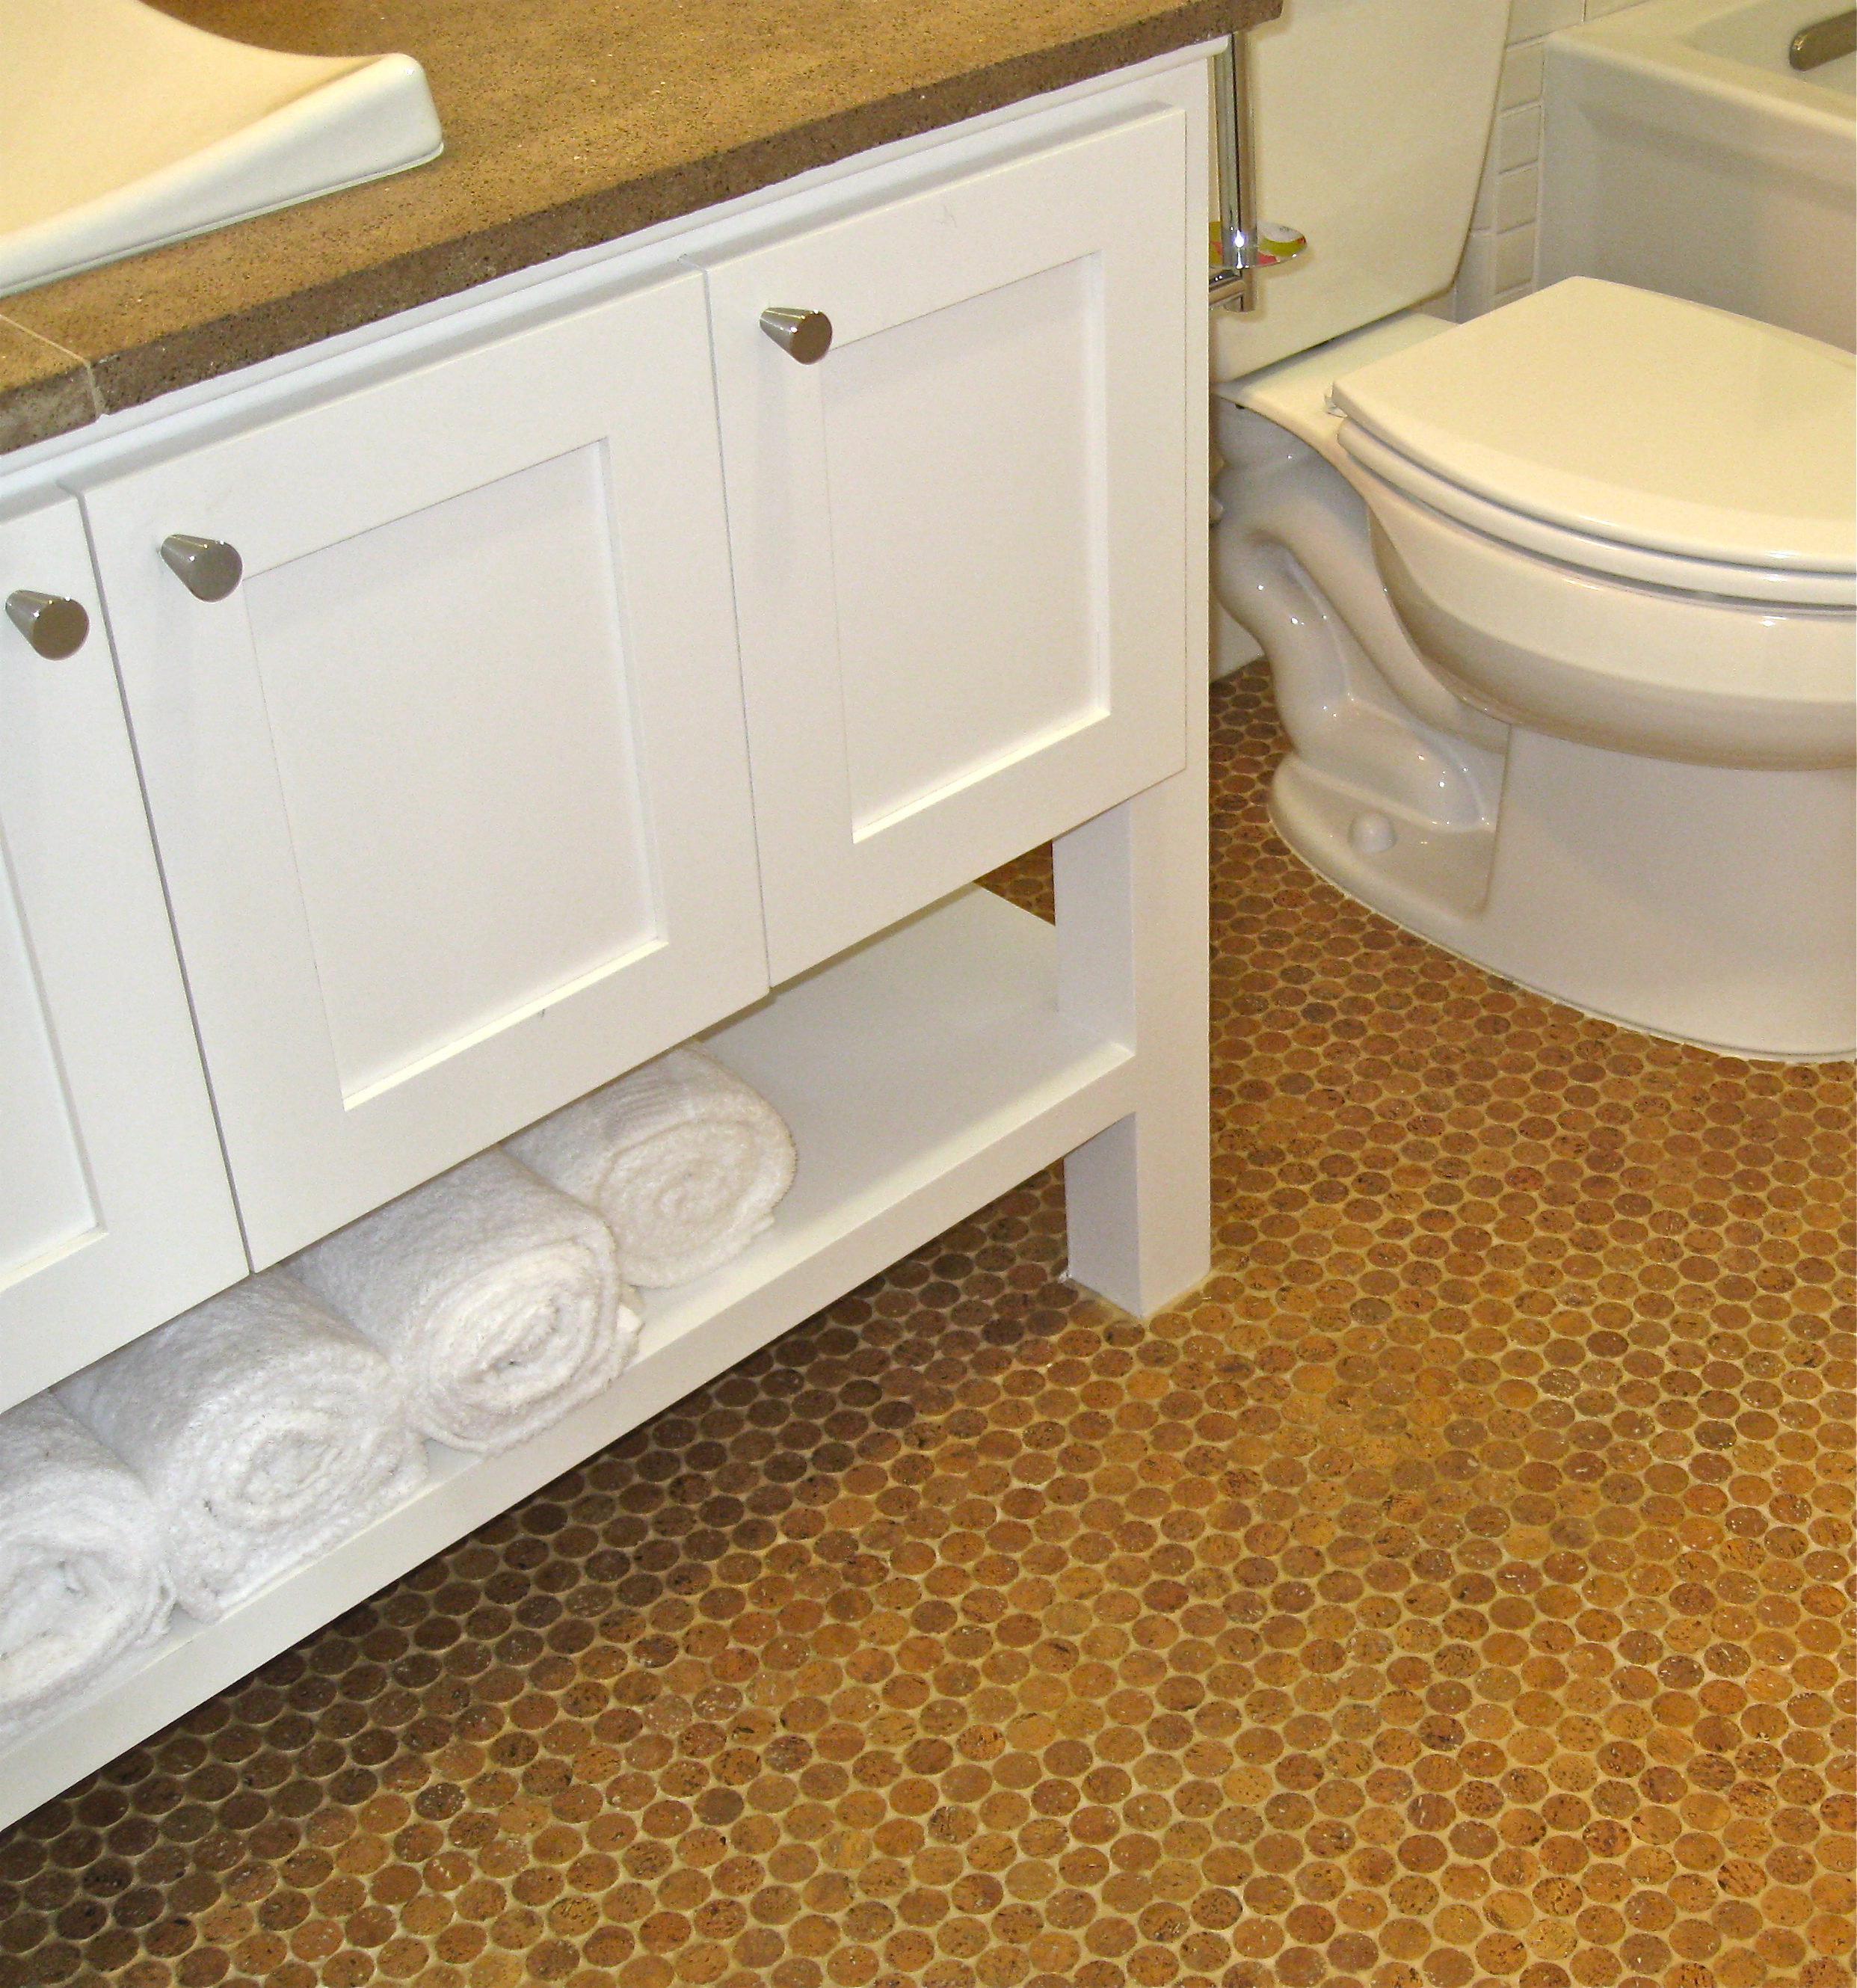 30 available ideas and pictures of cork bathroom flooring for Tile floors bathroom